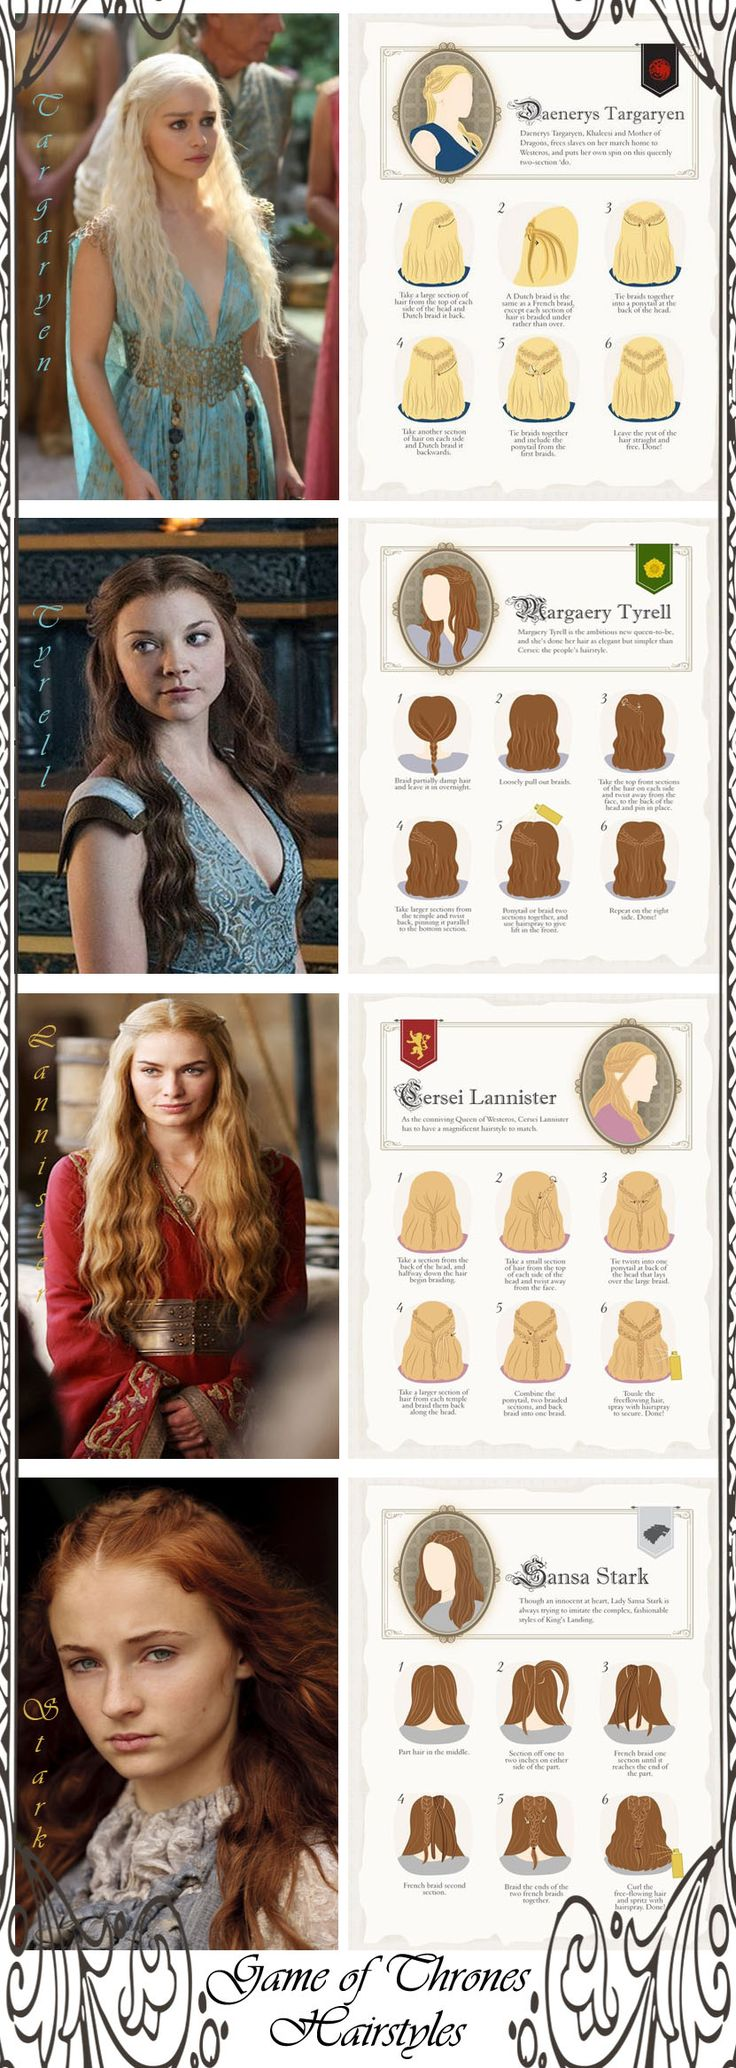 Game of Thrones Hairstyles....I'm just jealous of their hair!!